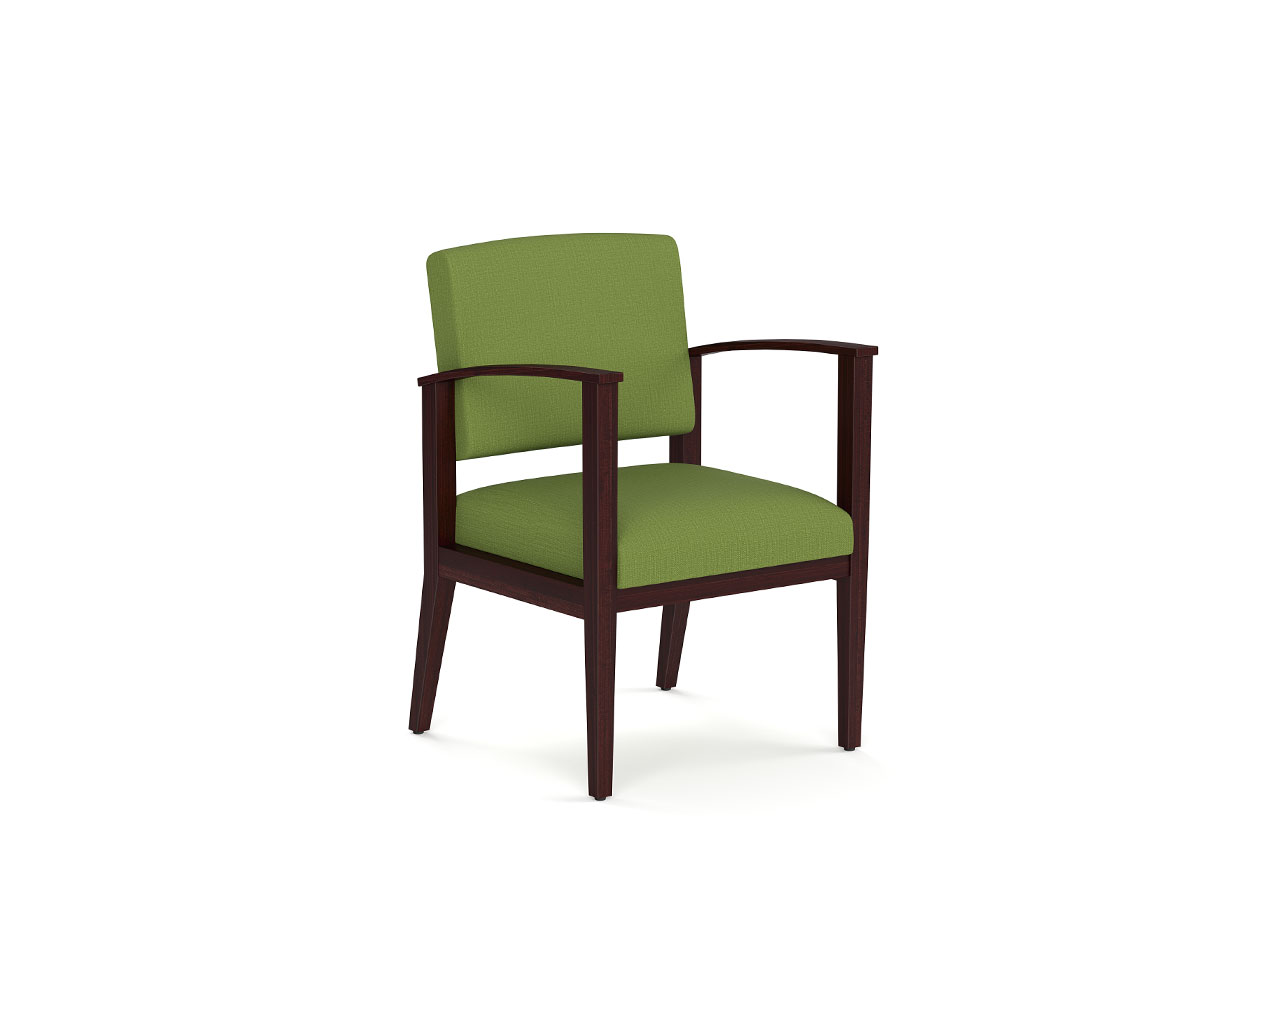 Morley Guest Chair Source Office Furniture